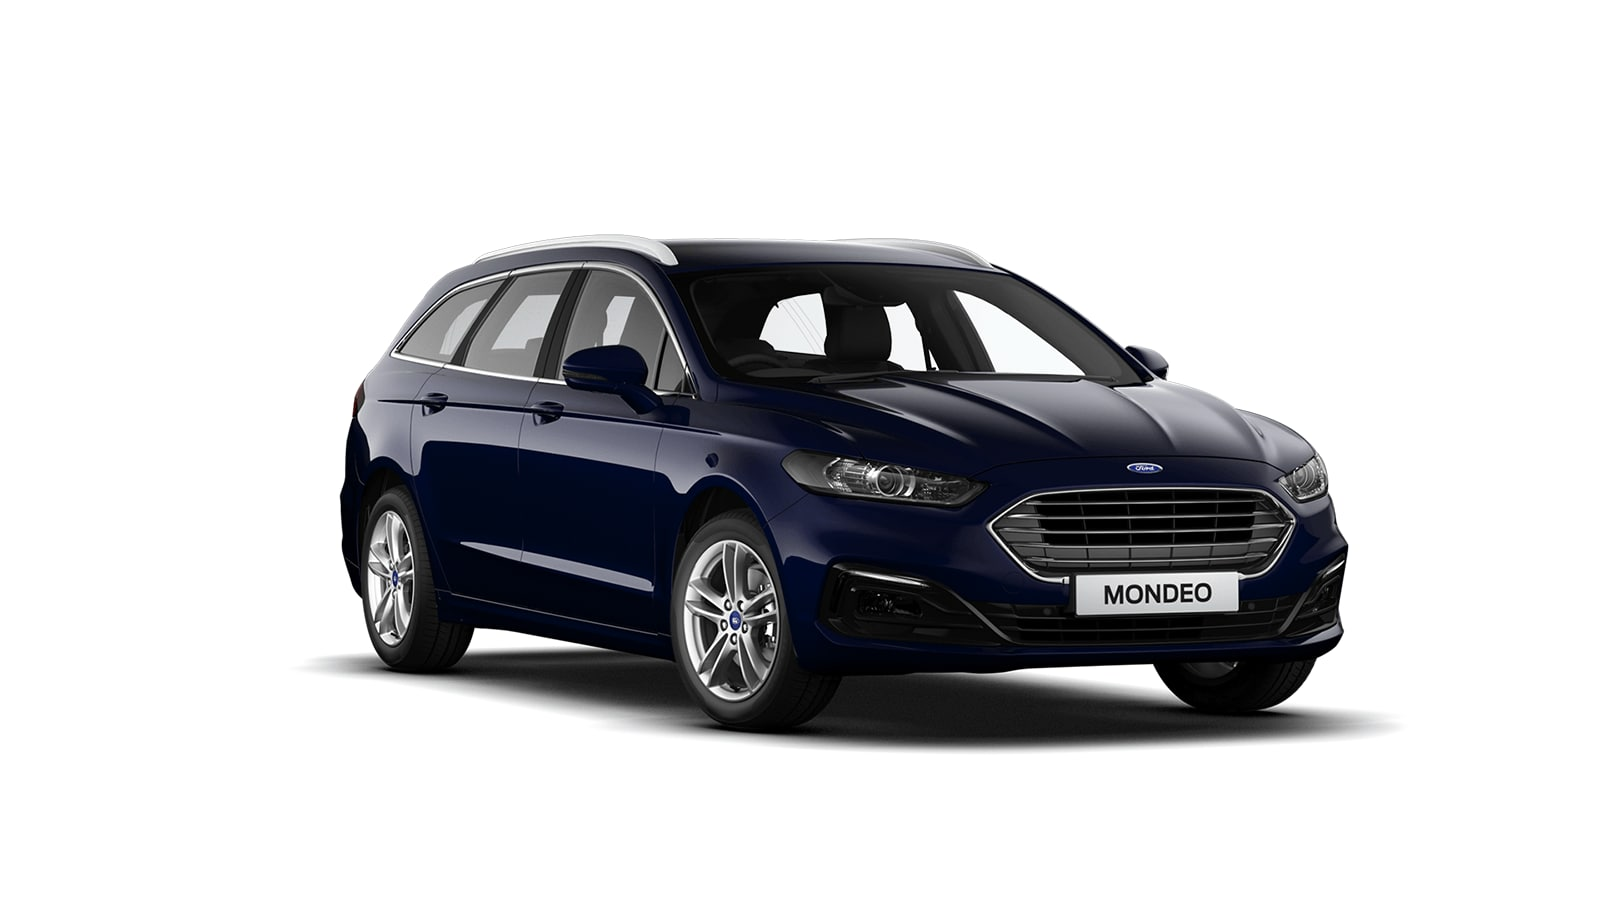 https://www.dealerinternet.co.uk/images/MONDEO%20(CD345)/2019.5/Estate/ZetecEdition/BLAZER-BLUE.png